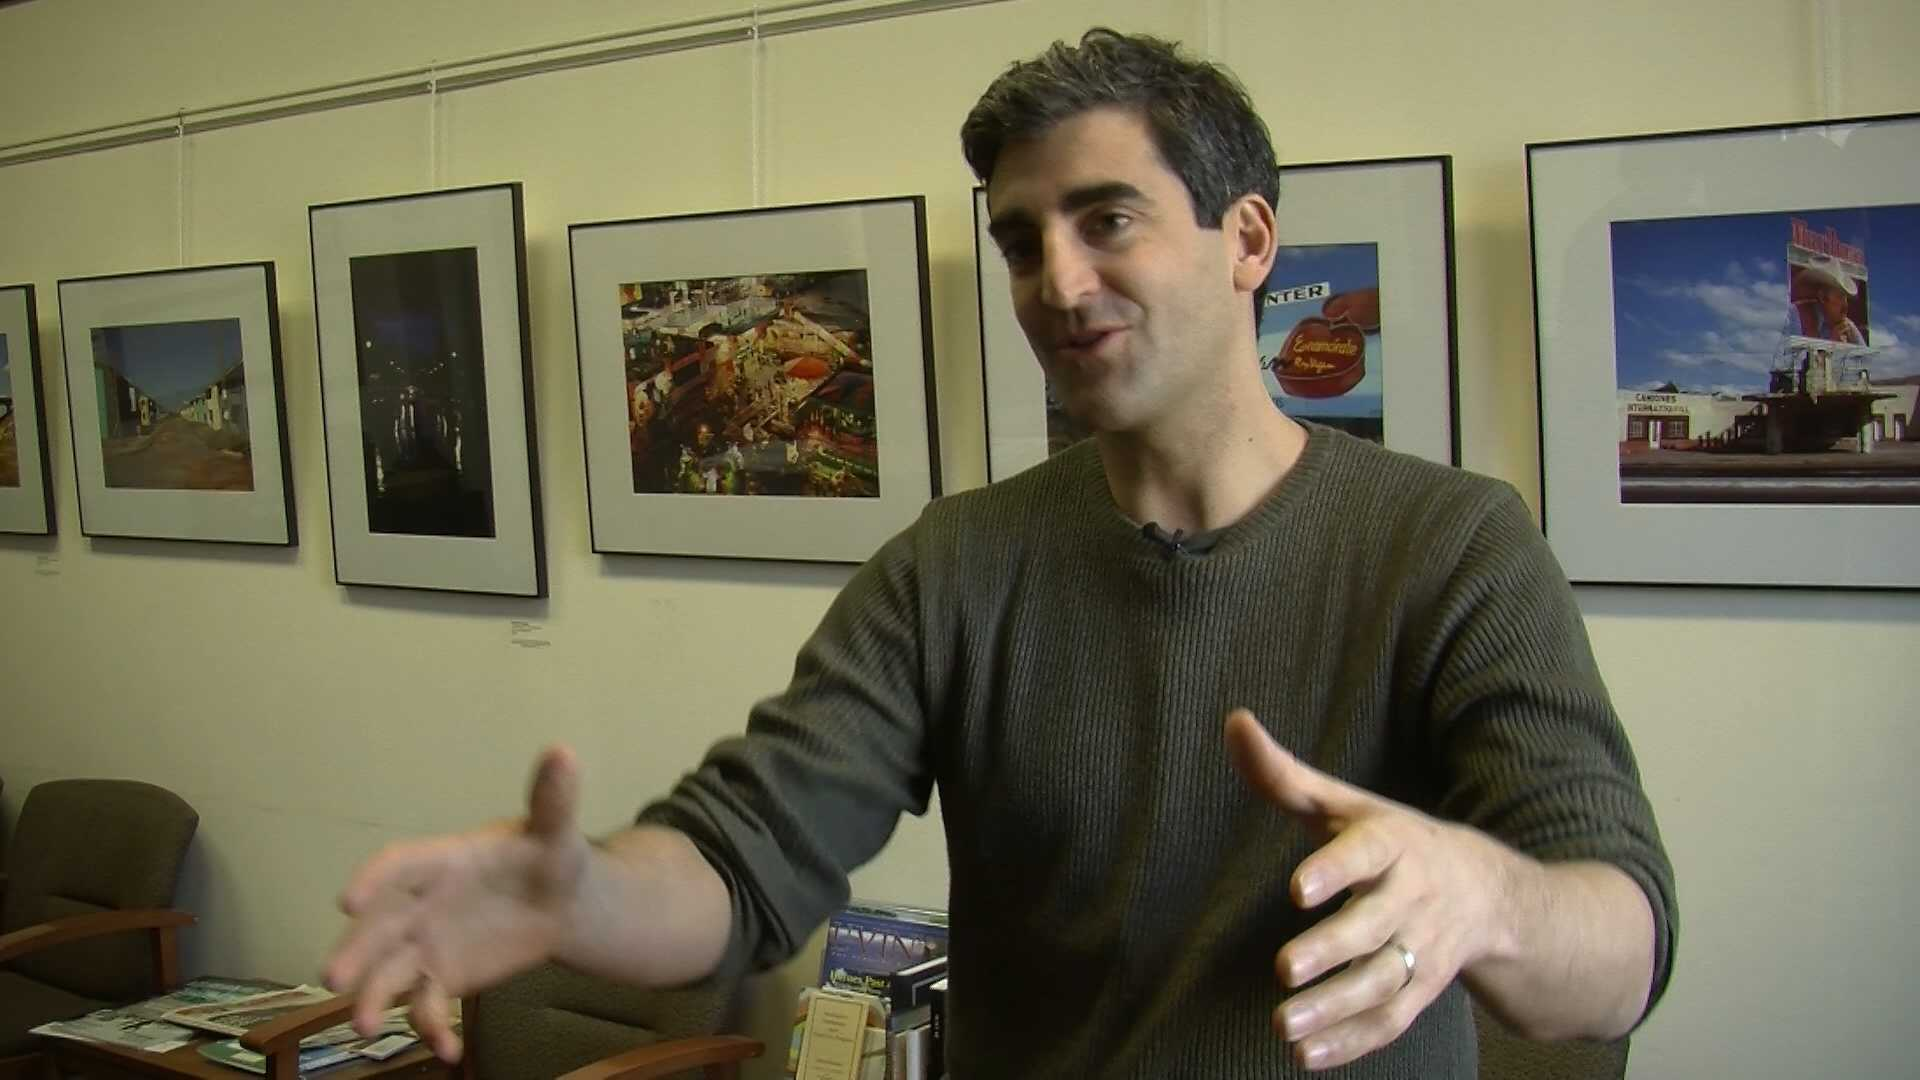 Burlington mayor Miro Weinberger shares what he'll be focusing on this new year.